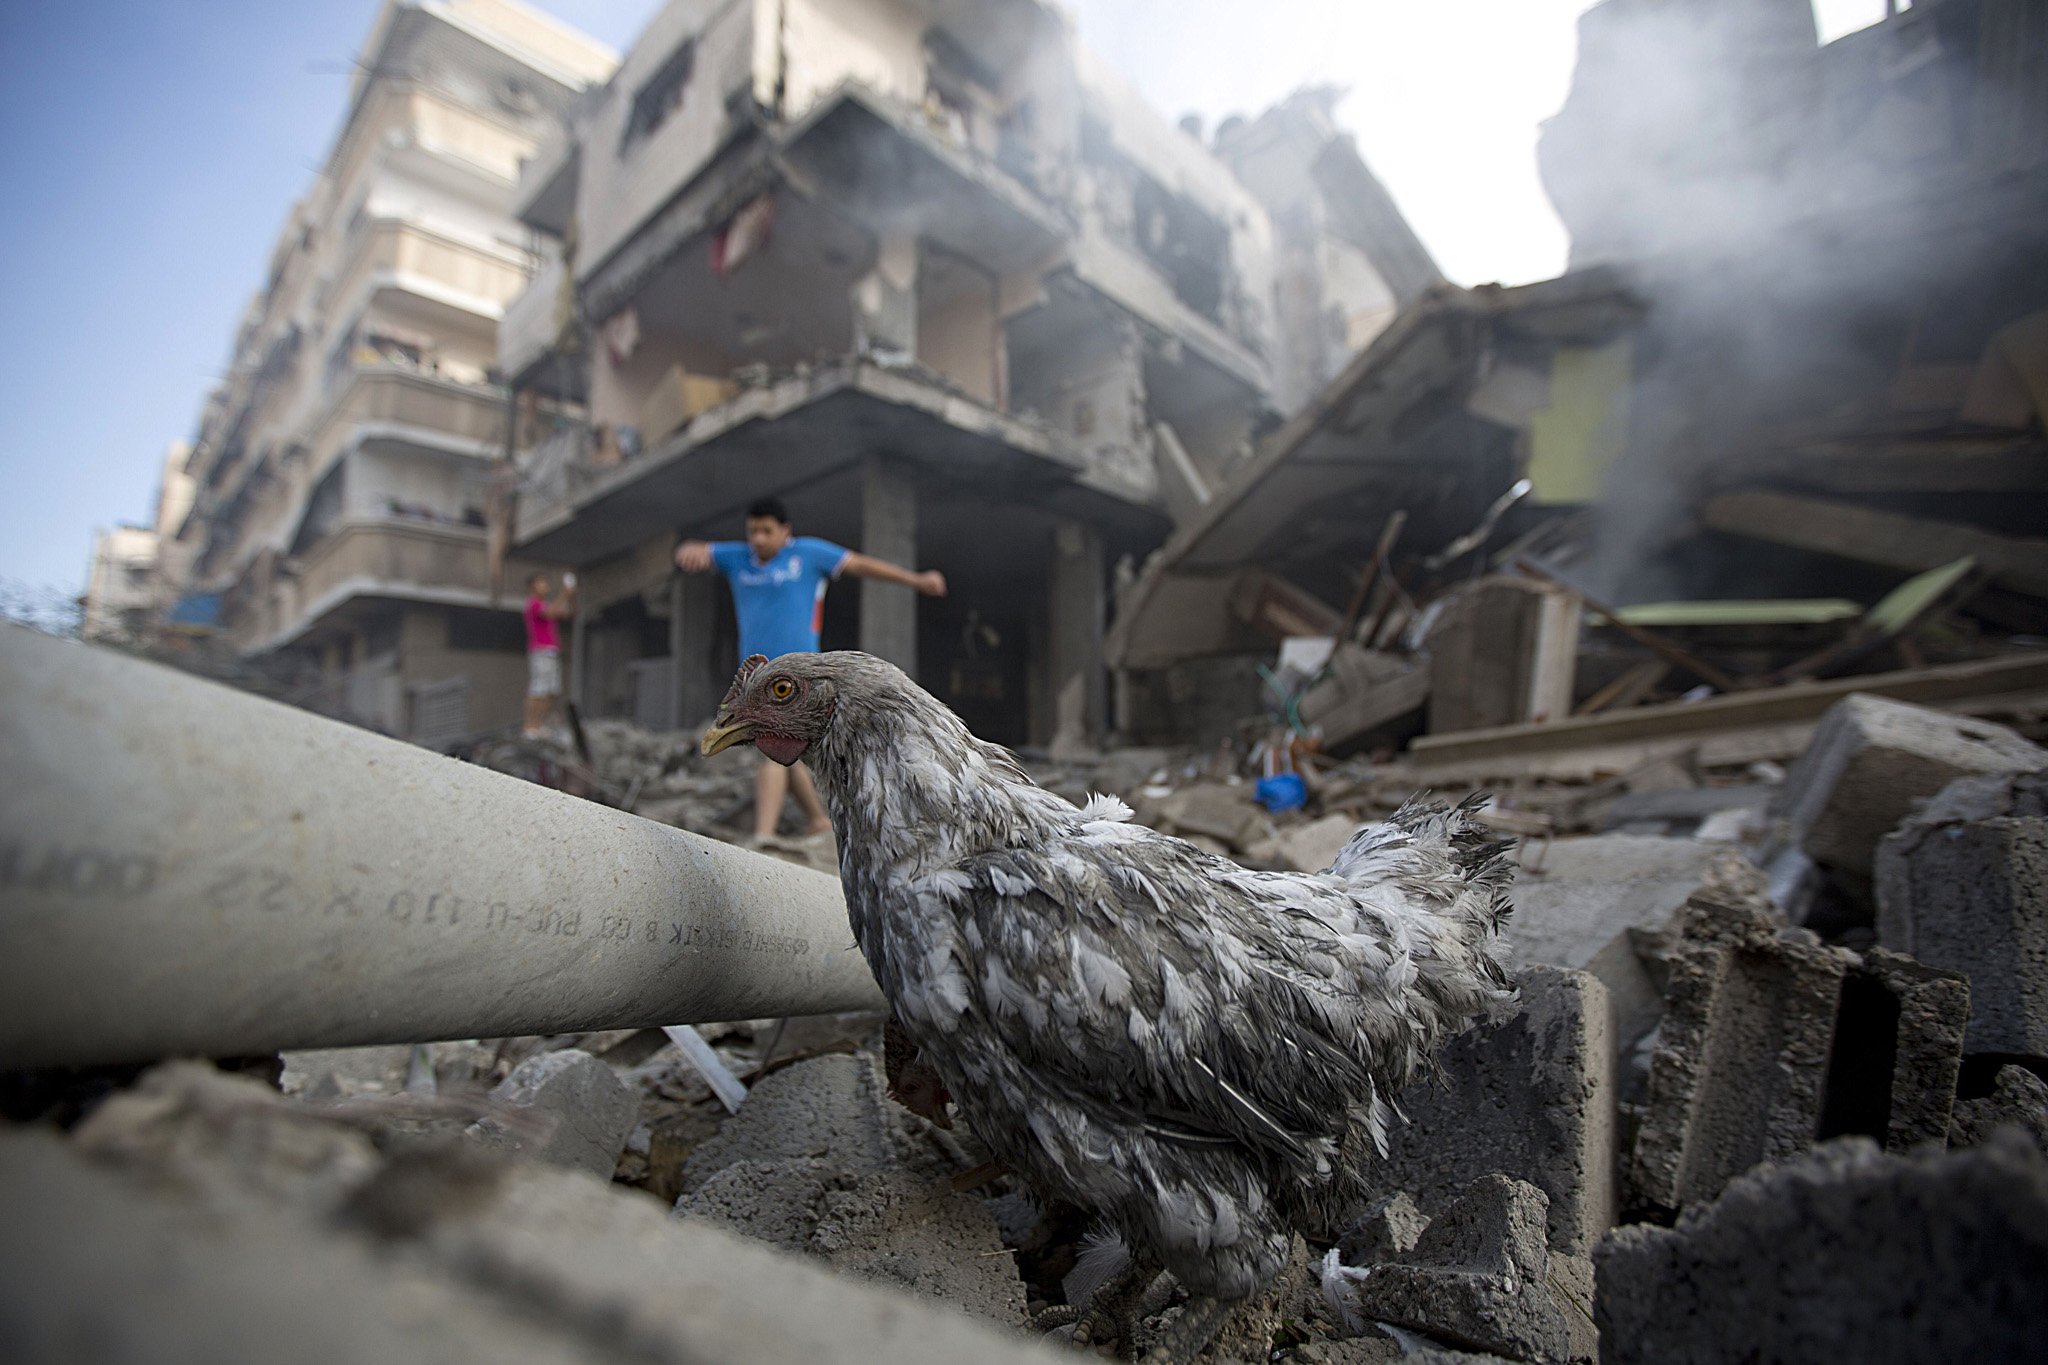 A chicken walks amidst the rubble of a d...A chicken walks amidst the rubble of a destroyed building following an Israeli air strike in Gaza City on July 11, 2014. Israeli warplanes kept up deadly raids on Gaza but failed to stop Palestinian militants firing rockets across the border, as the United States offered to help negotiate a truce. AFP PHOTO/MOHAMMED ABED MOHAMMED ABED/AFP/Getty Images